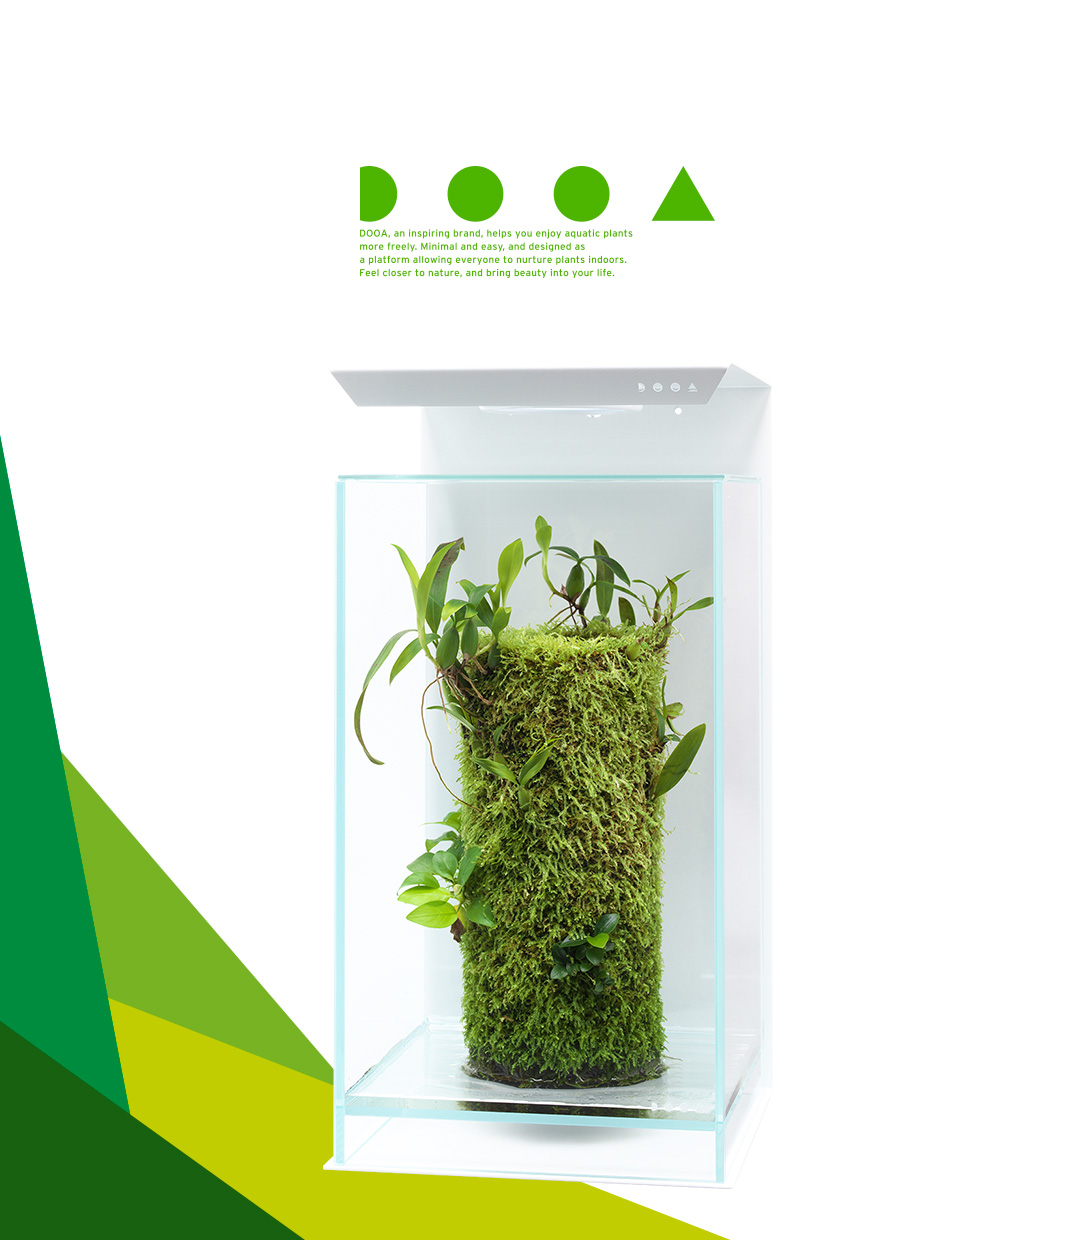 DOOA TERRA BASE 'Charms of Epiphytic Plants that Grow on Moss-covered Trees'